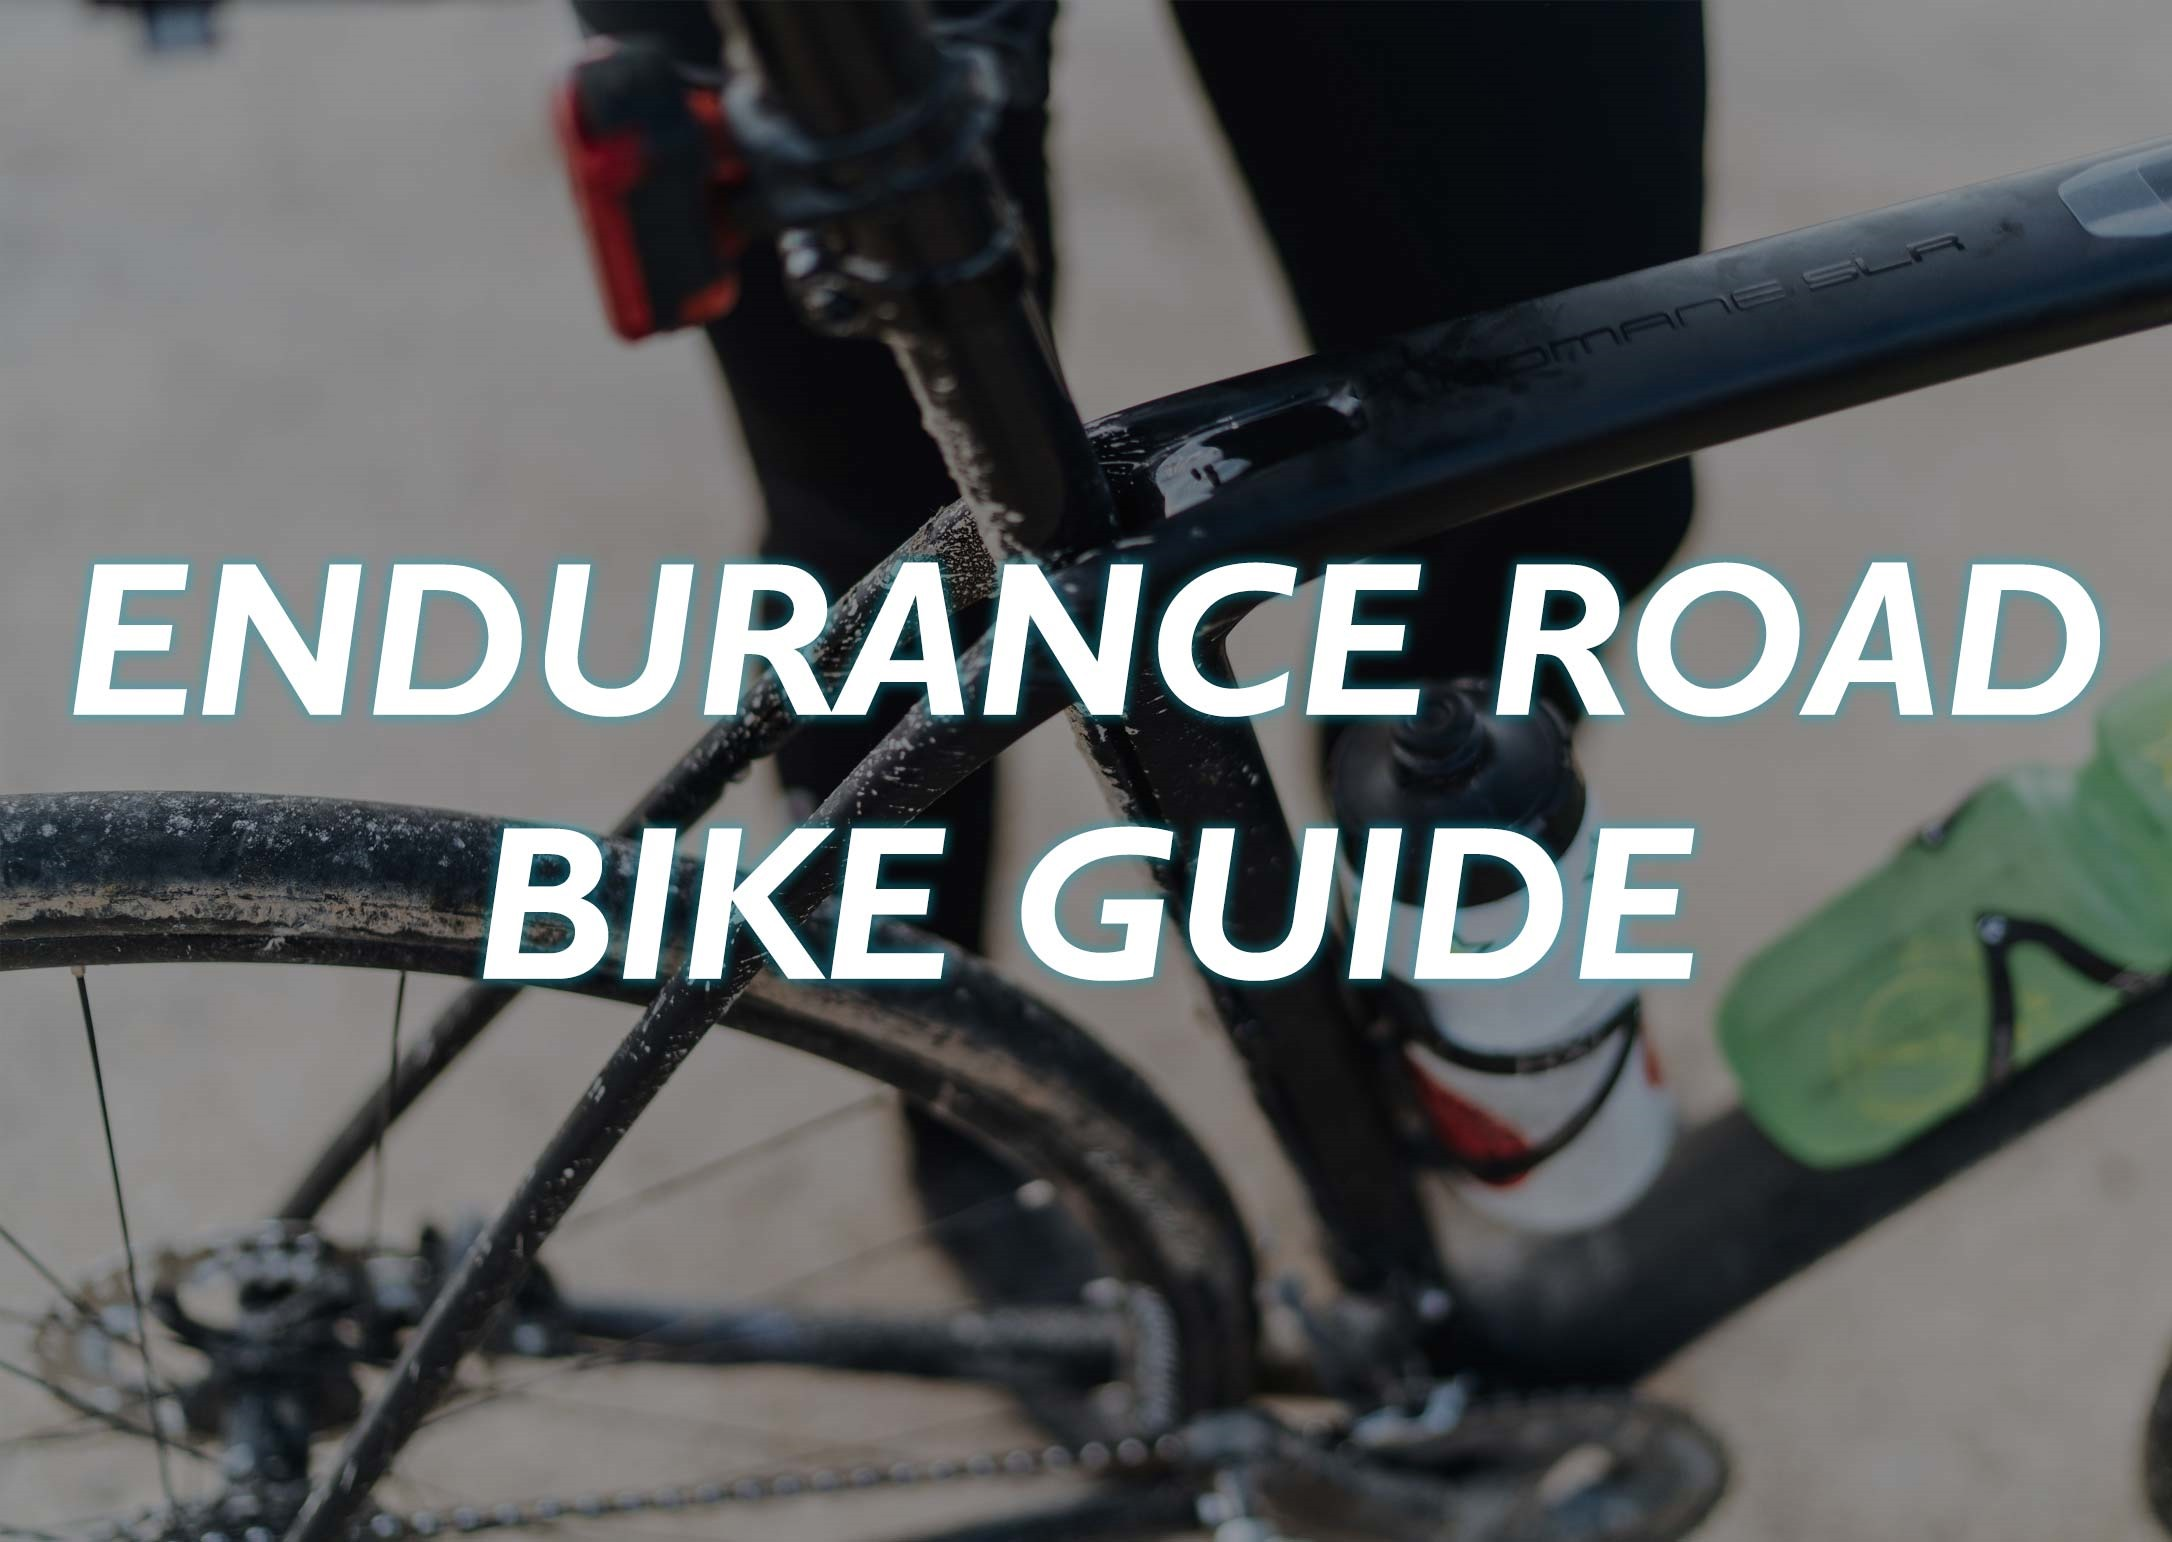 endurance-roadbike-guide-tile